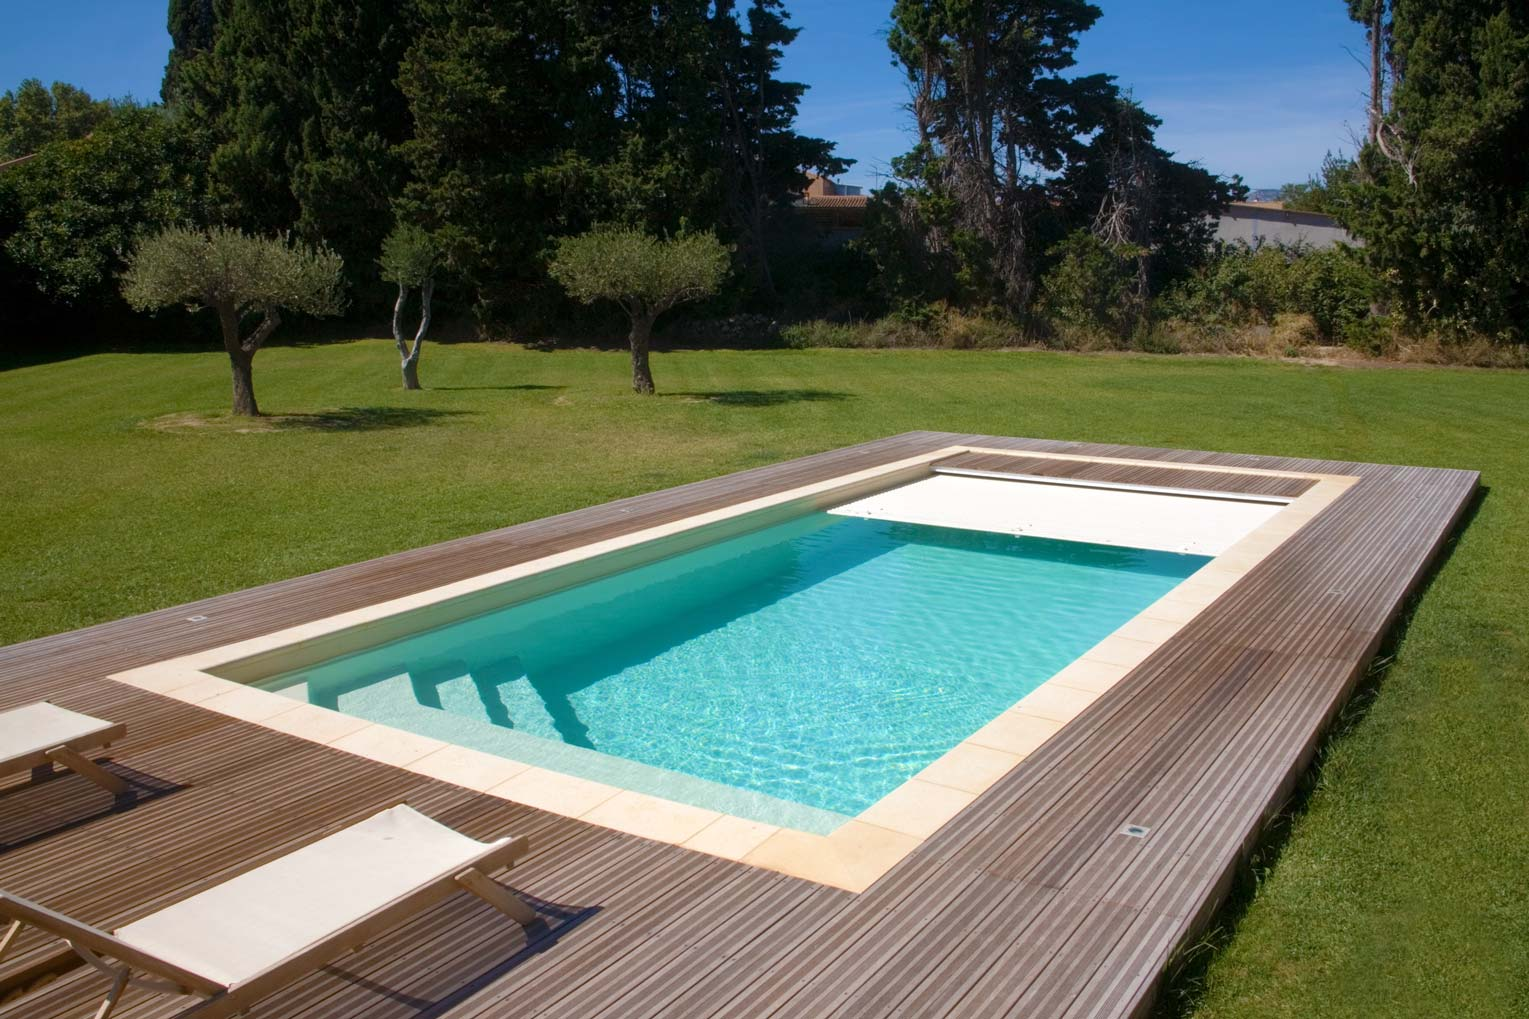 Attache Securite Volet Roulant Piscine